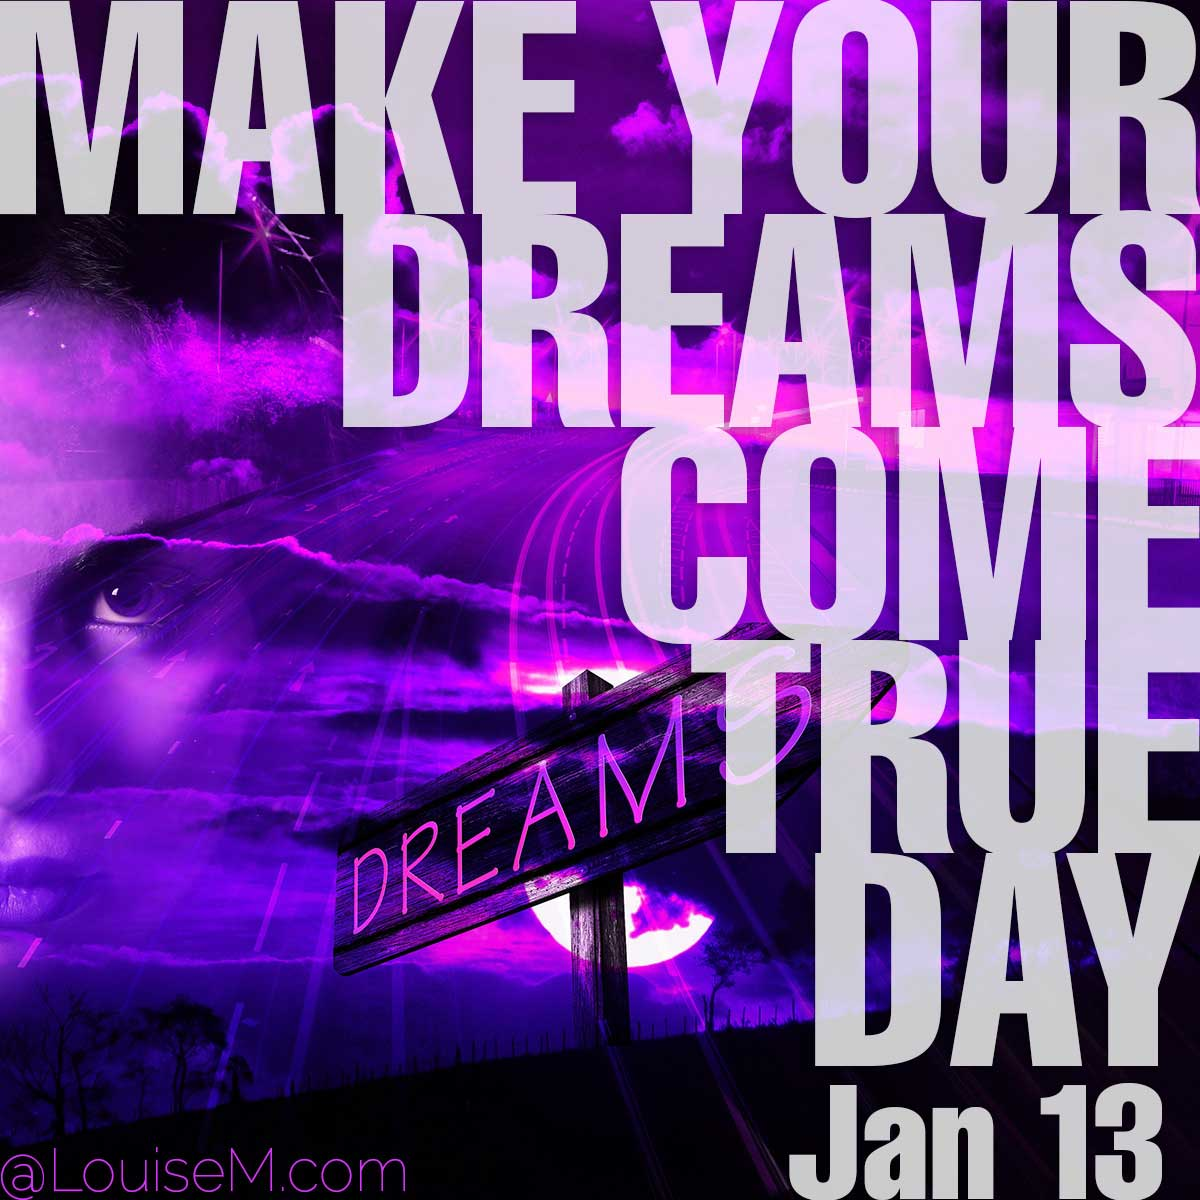 Make Your Dreams Come True Day text on purple dreamy background.